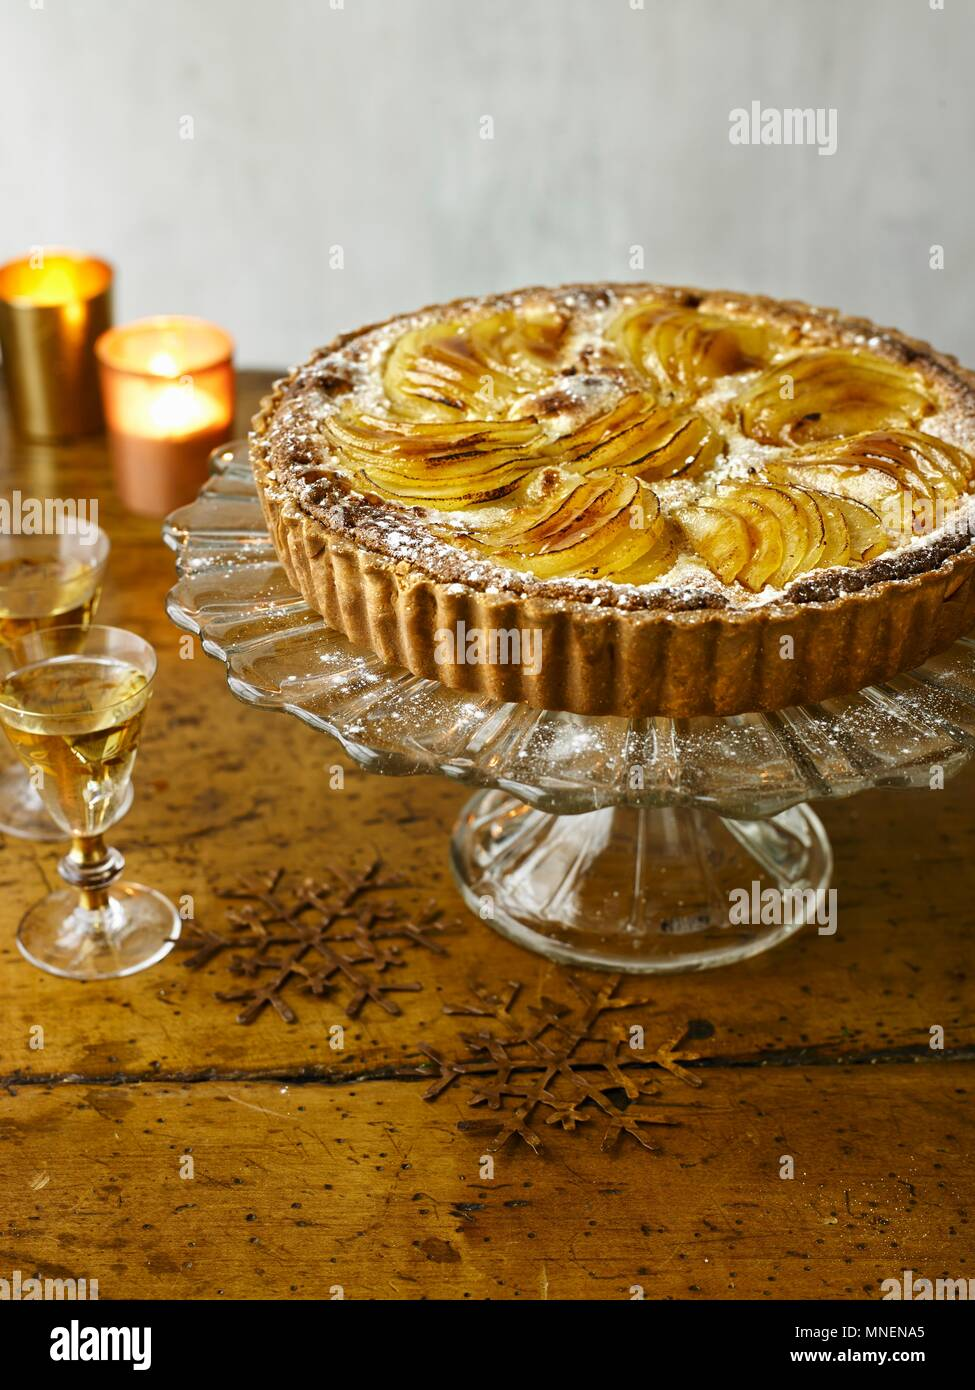 Pear, Almond Tart with Cinnamon Icecream - Stock Image